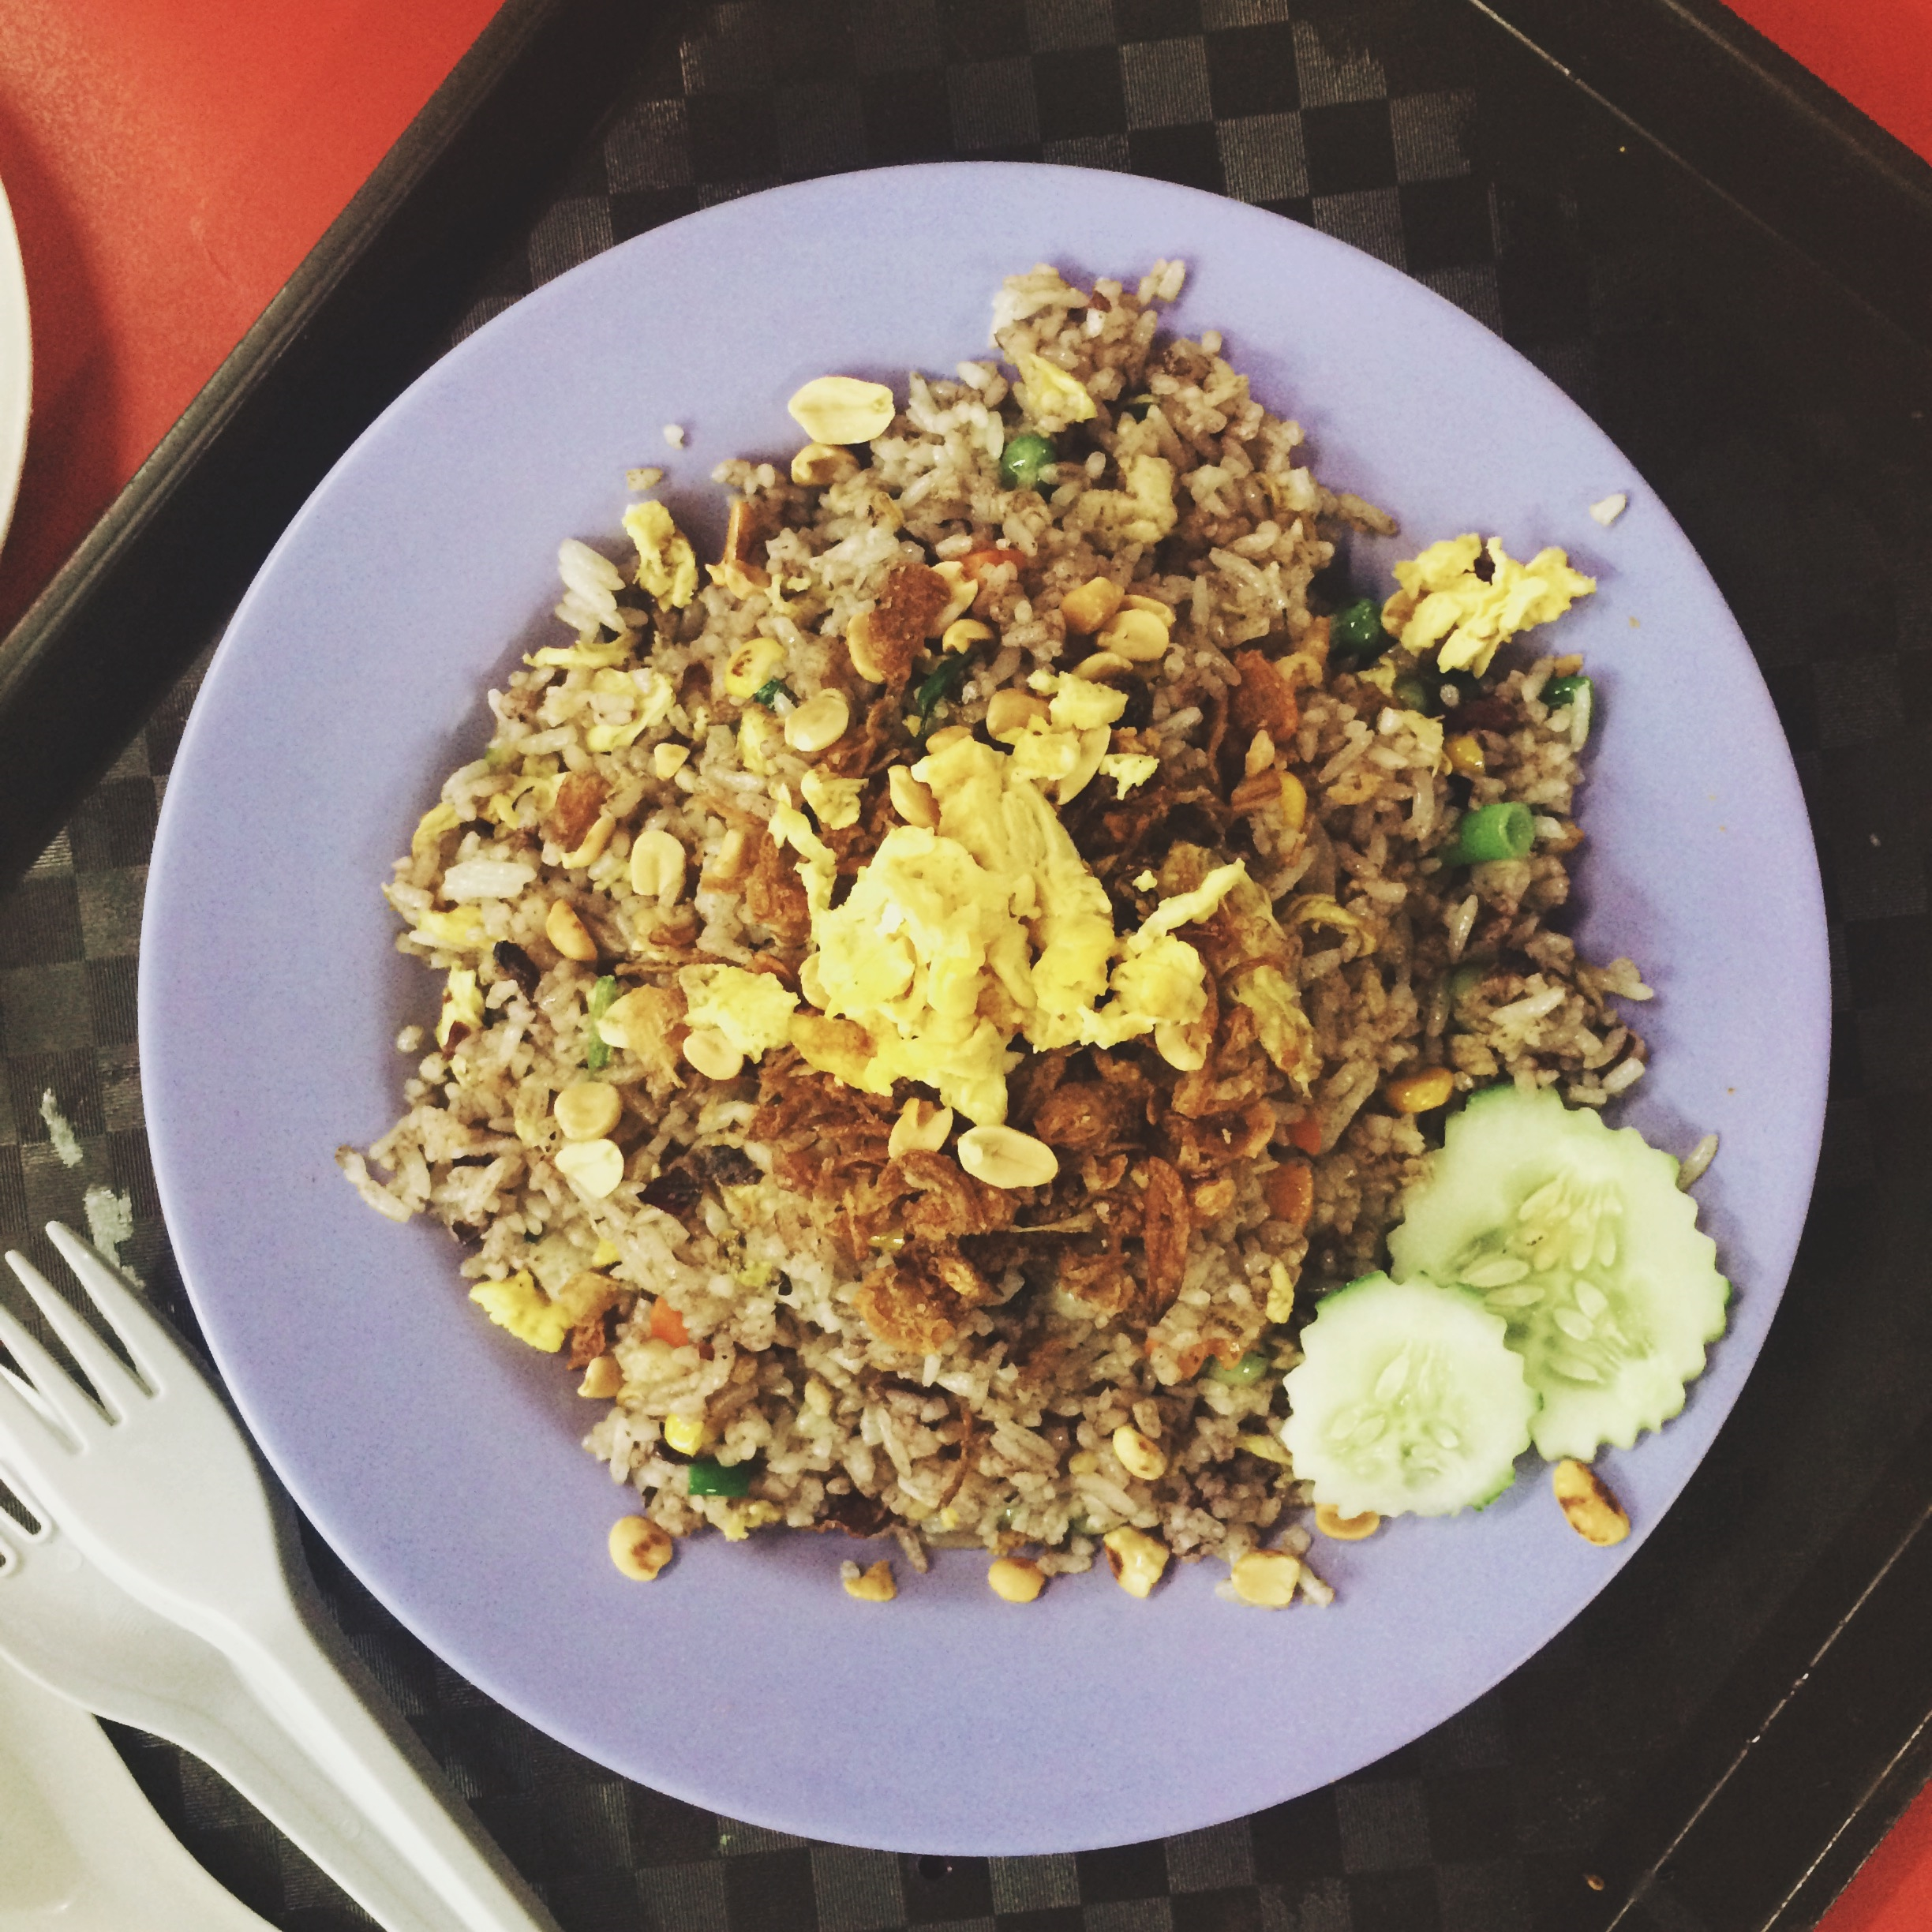 B. Olive fried rice